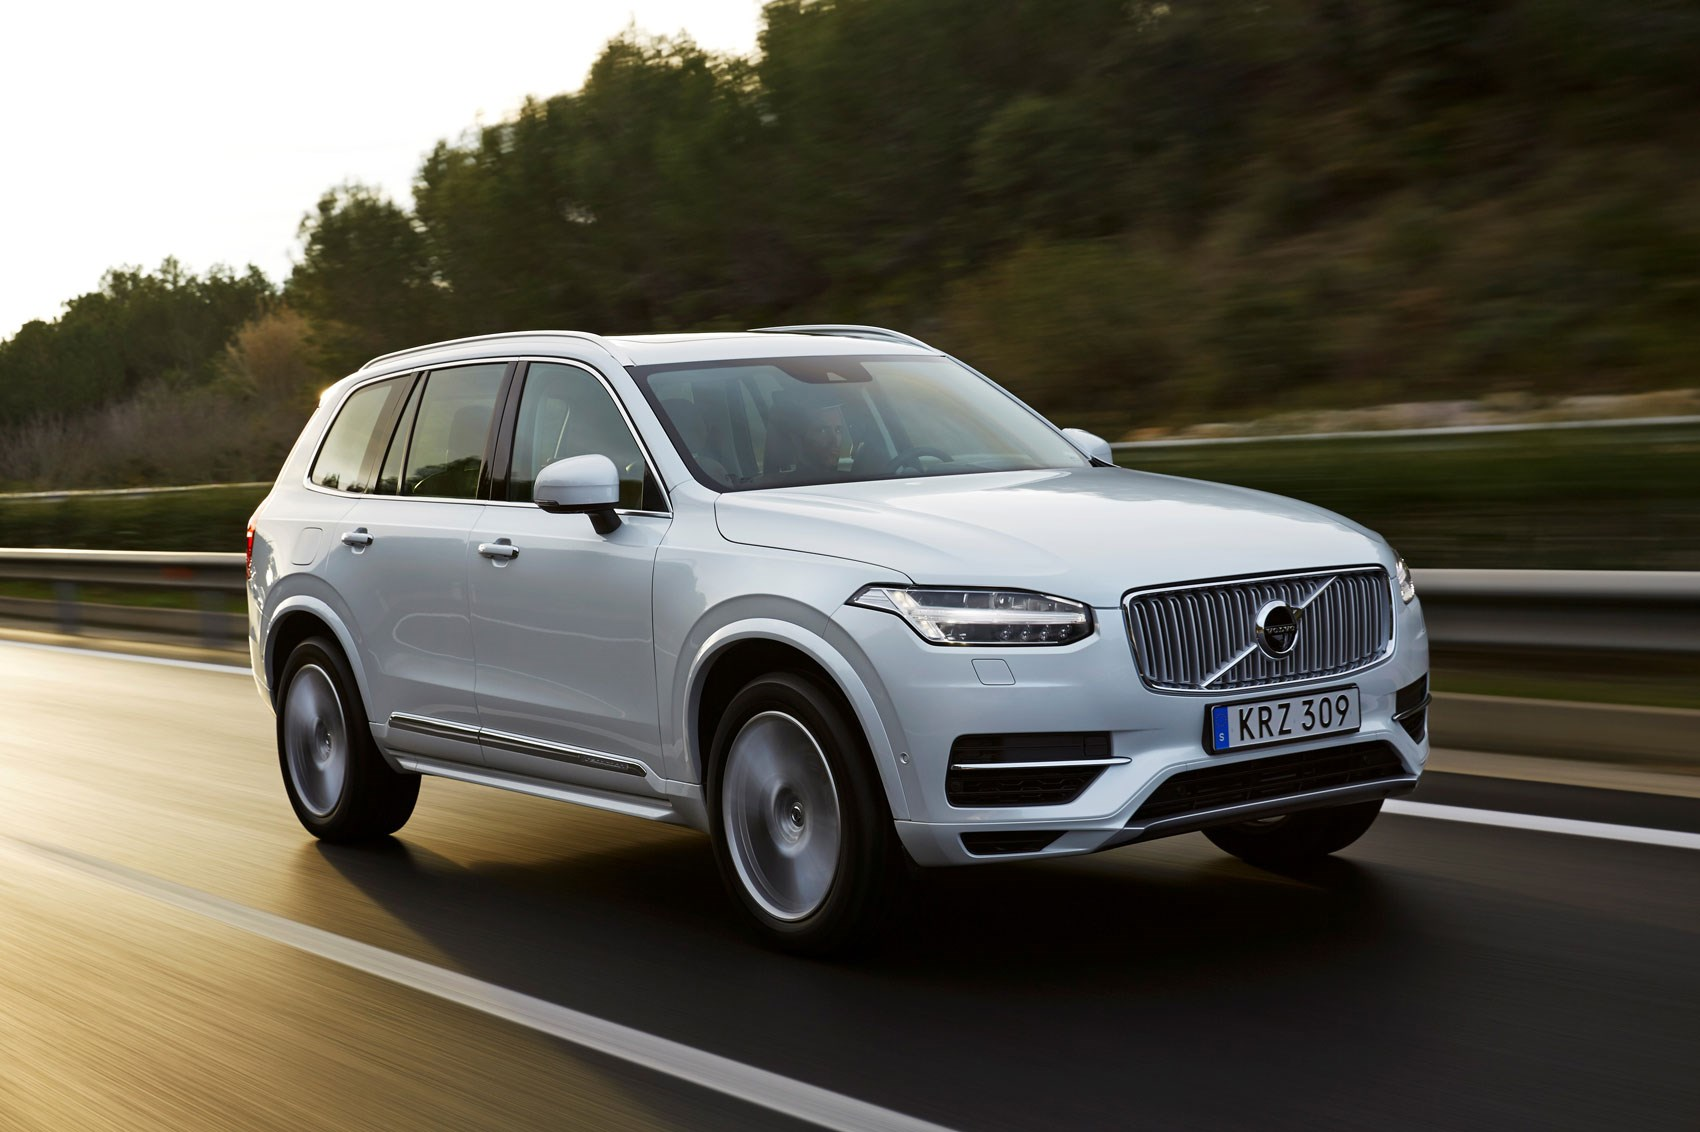 Twin Engine T8 Volvo Xc90 Tops The Range